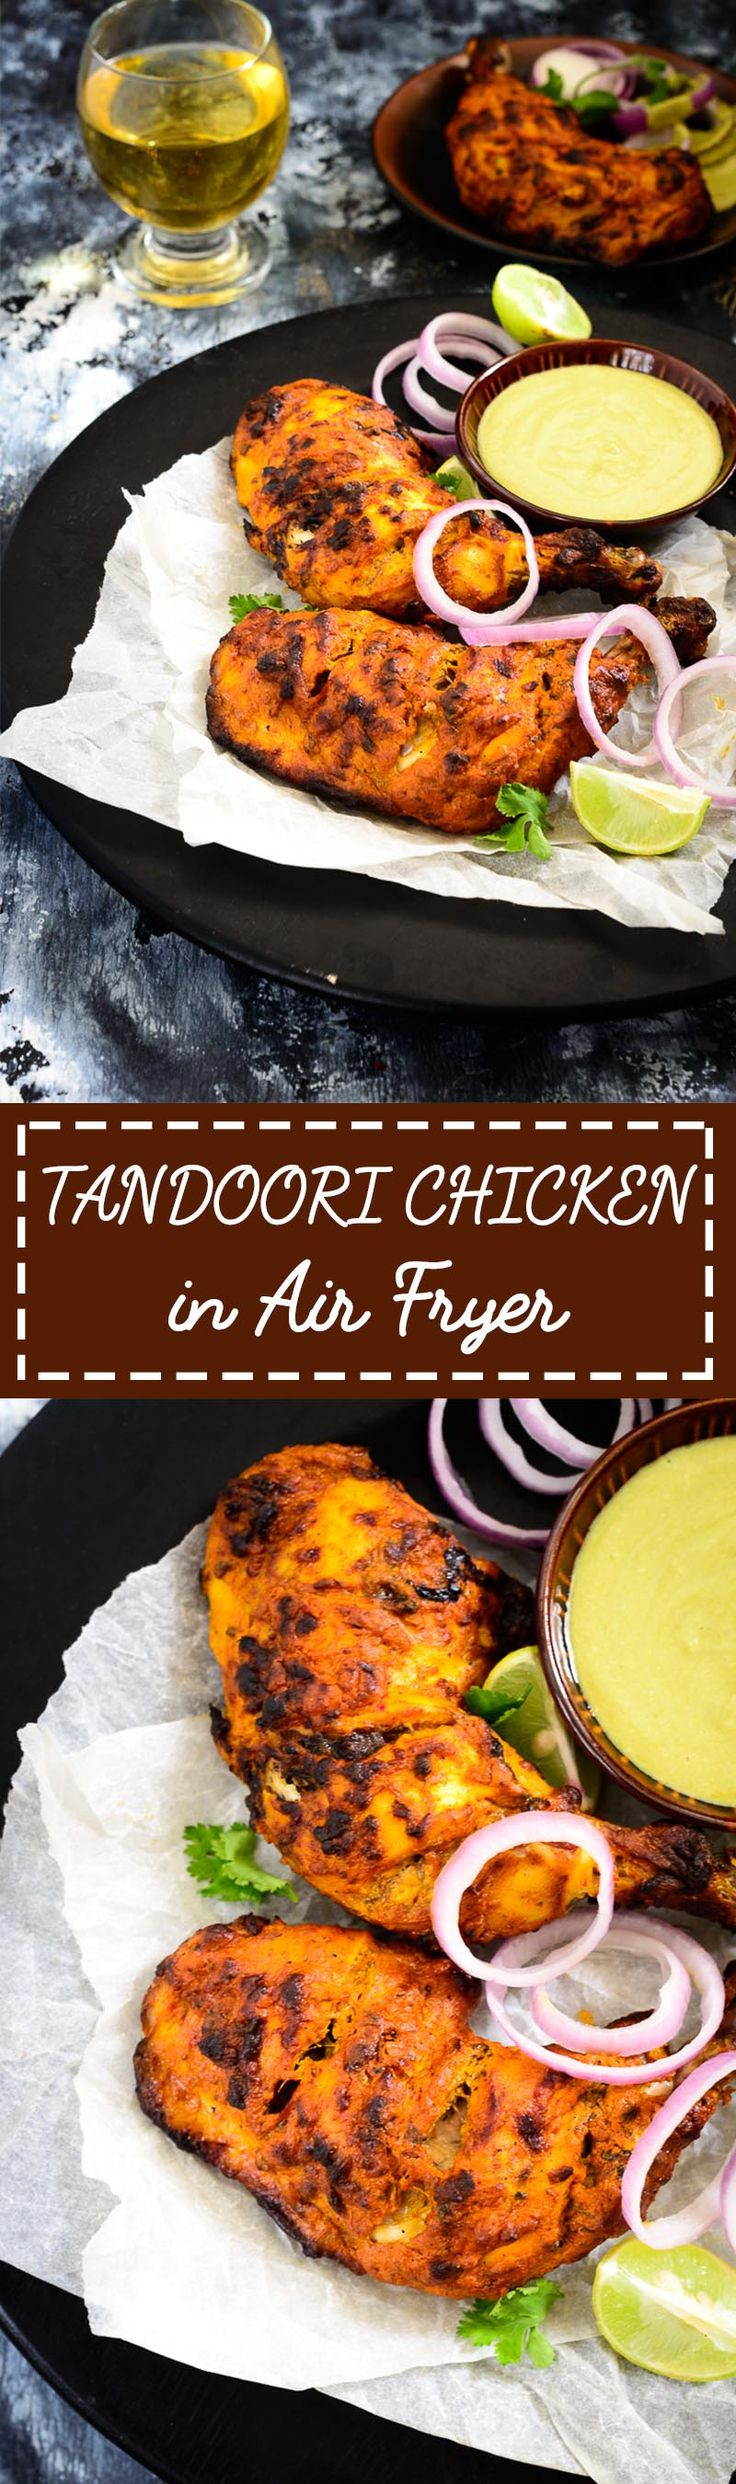 Tandoori Chicken in Air Fryer. Food Photography and Styling by Neha Mathur. Air Fryer recipe